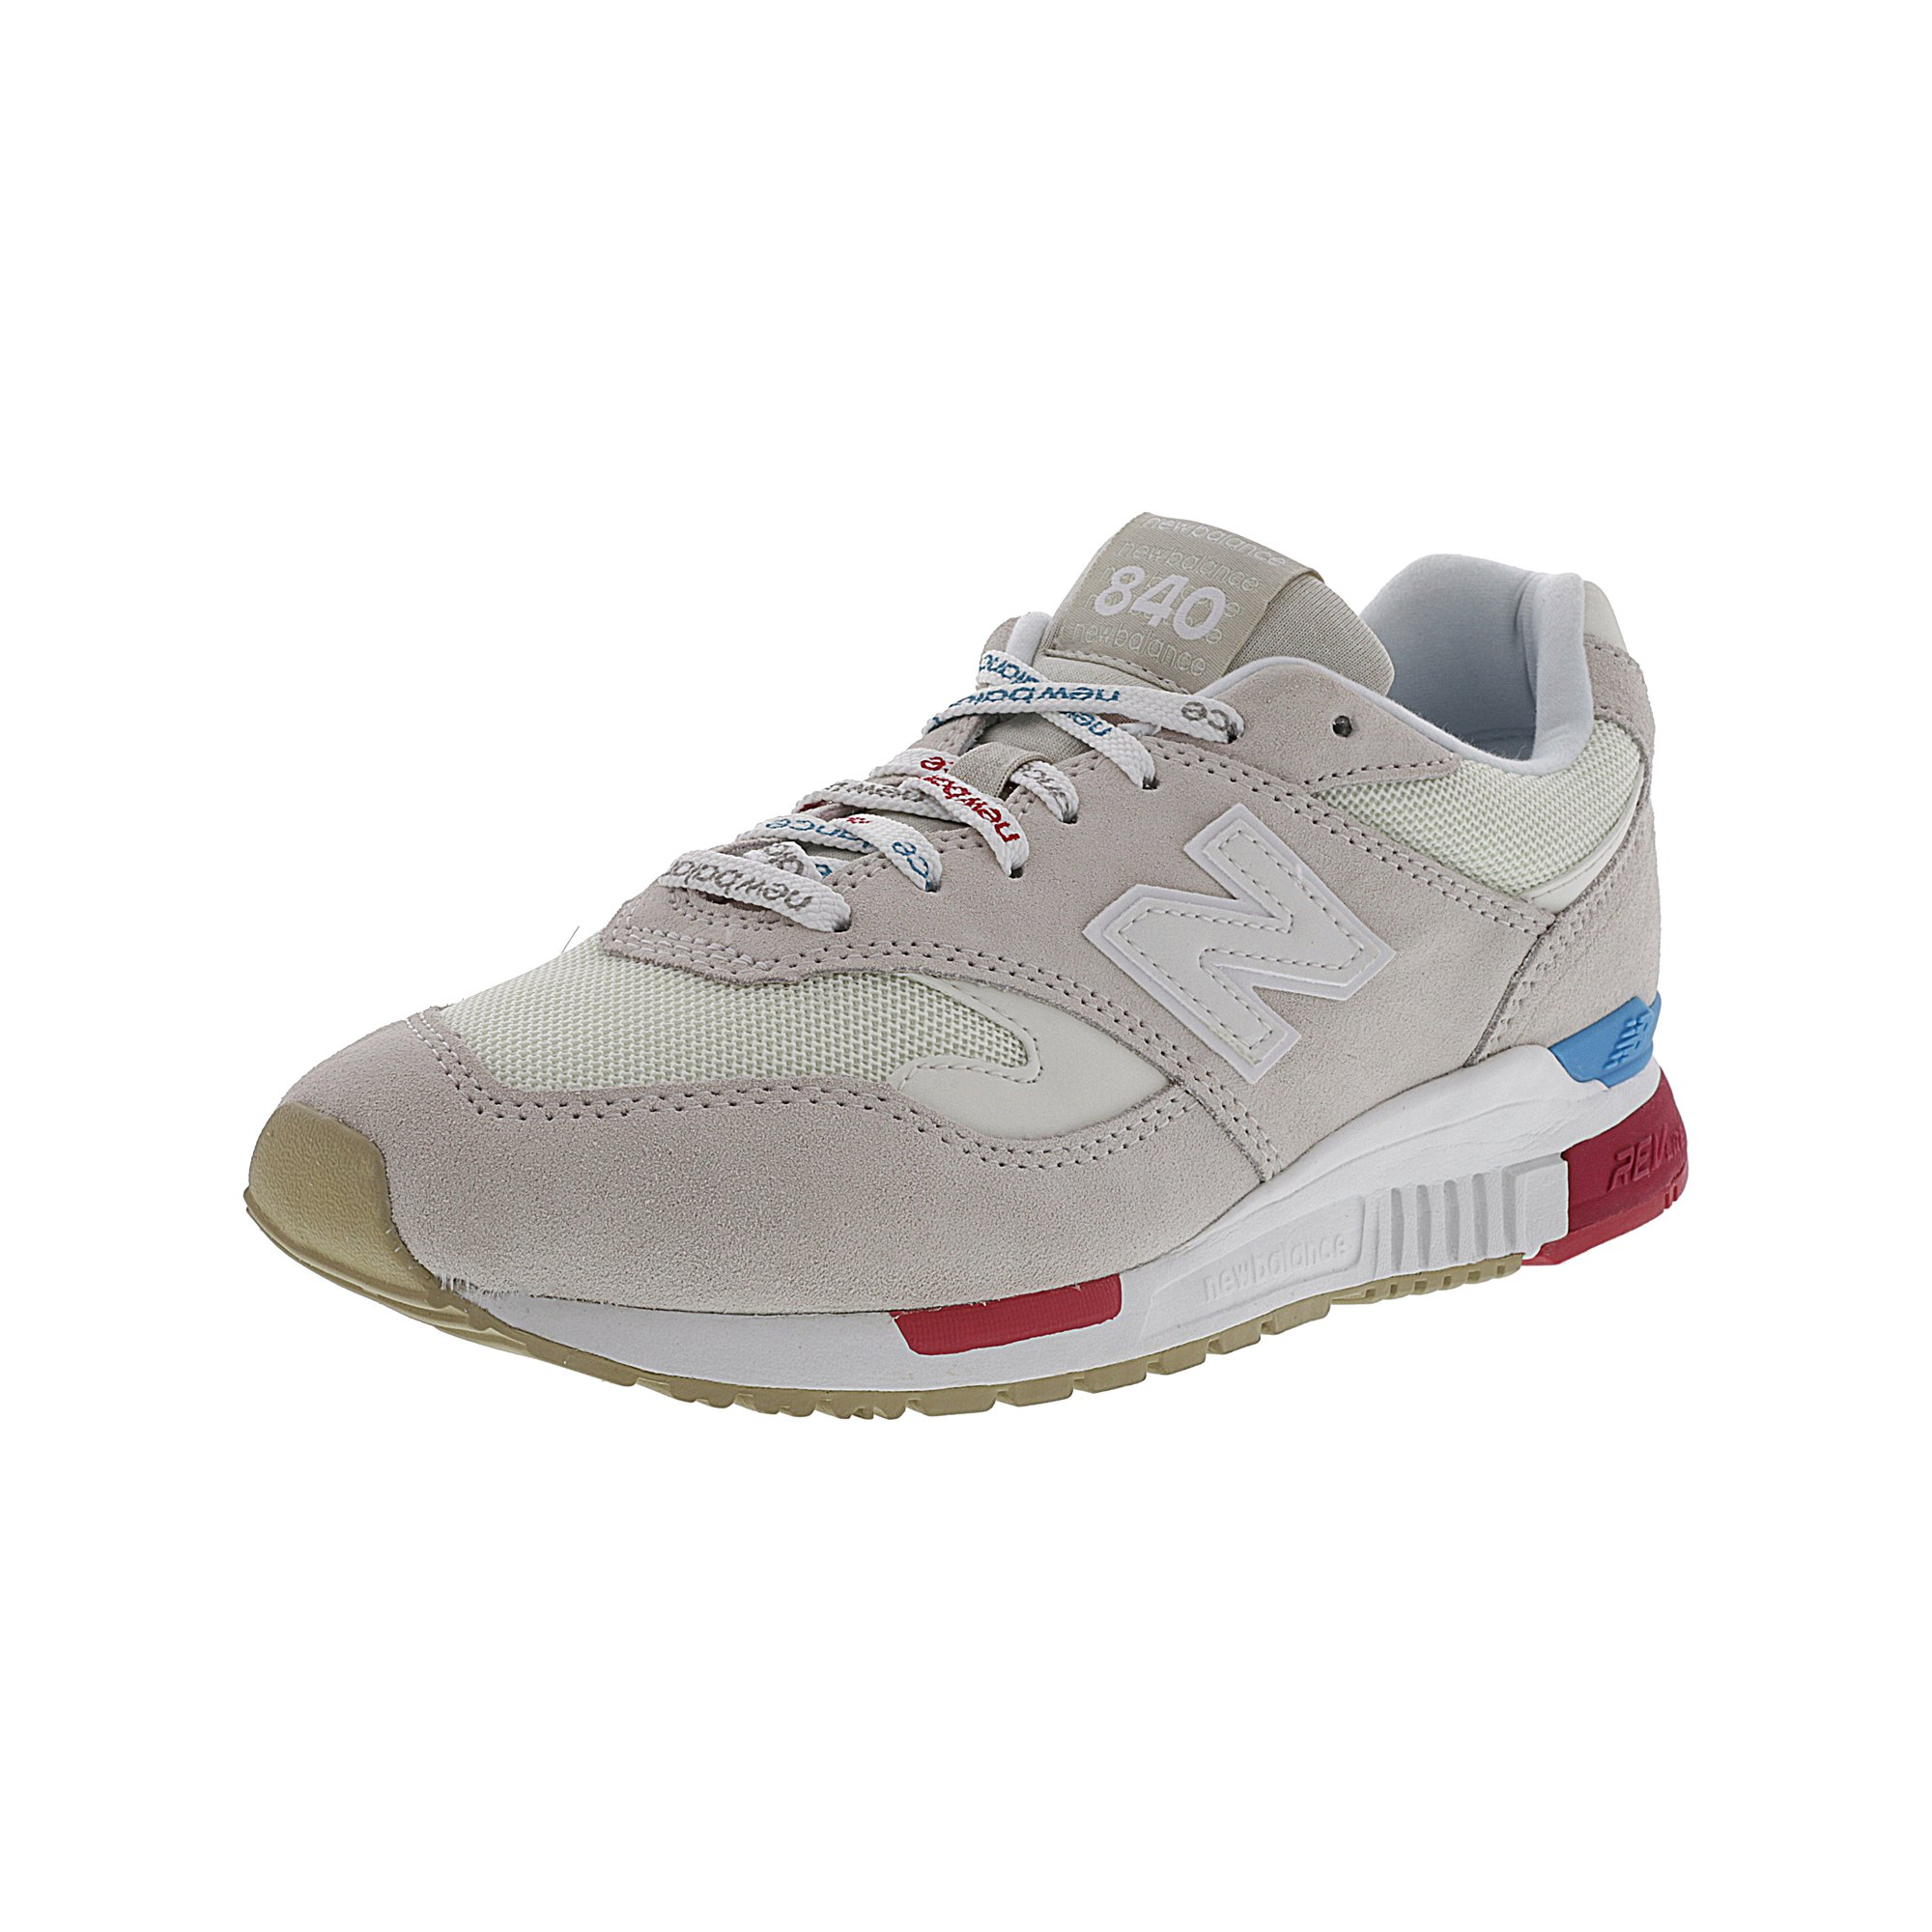 847bc8d0cd3b6 New Balance Women's Wl840 Rts Ankle-High Suede Fashion Sneaker - 9.5M |  Walmart Canada